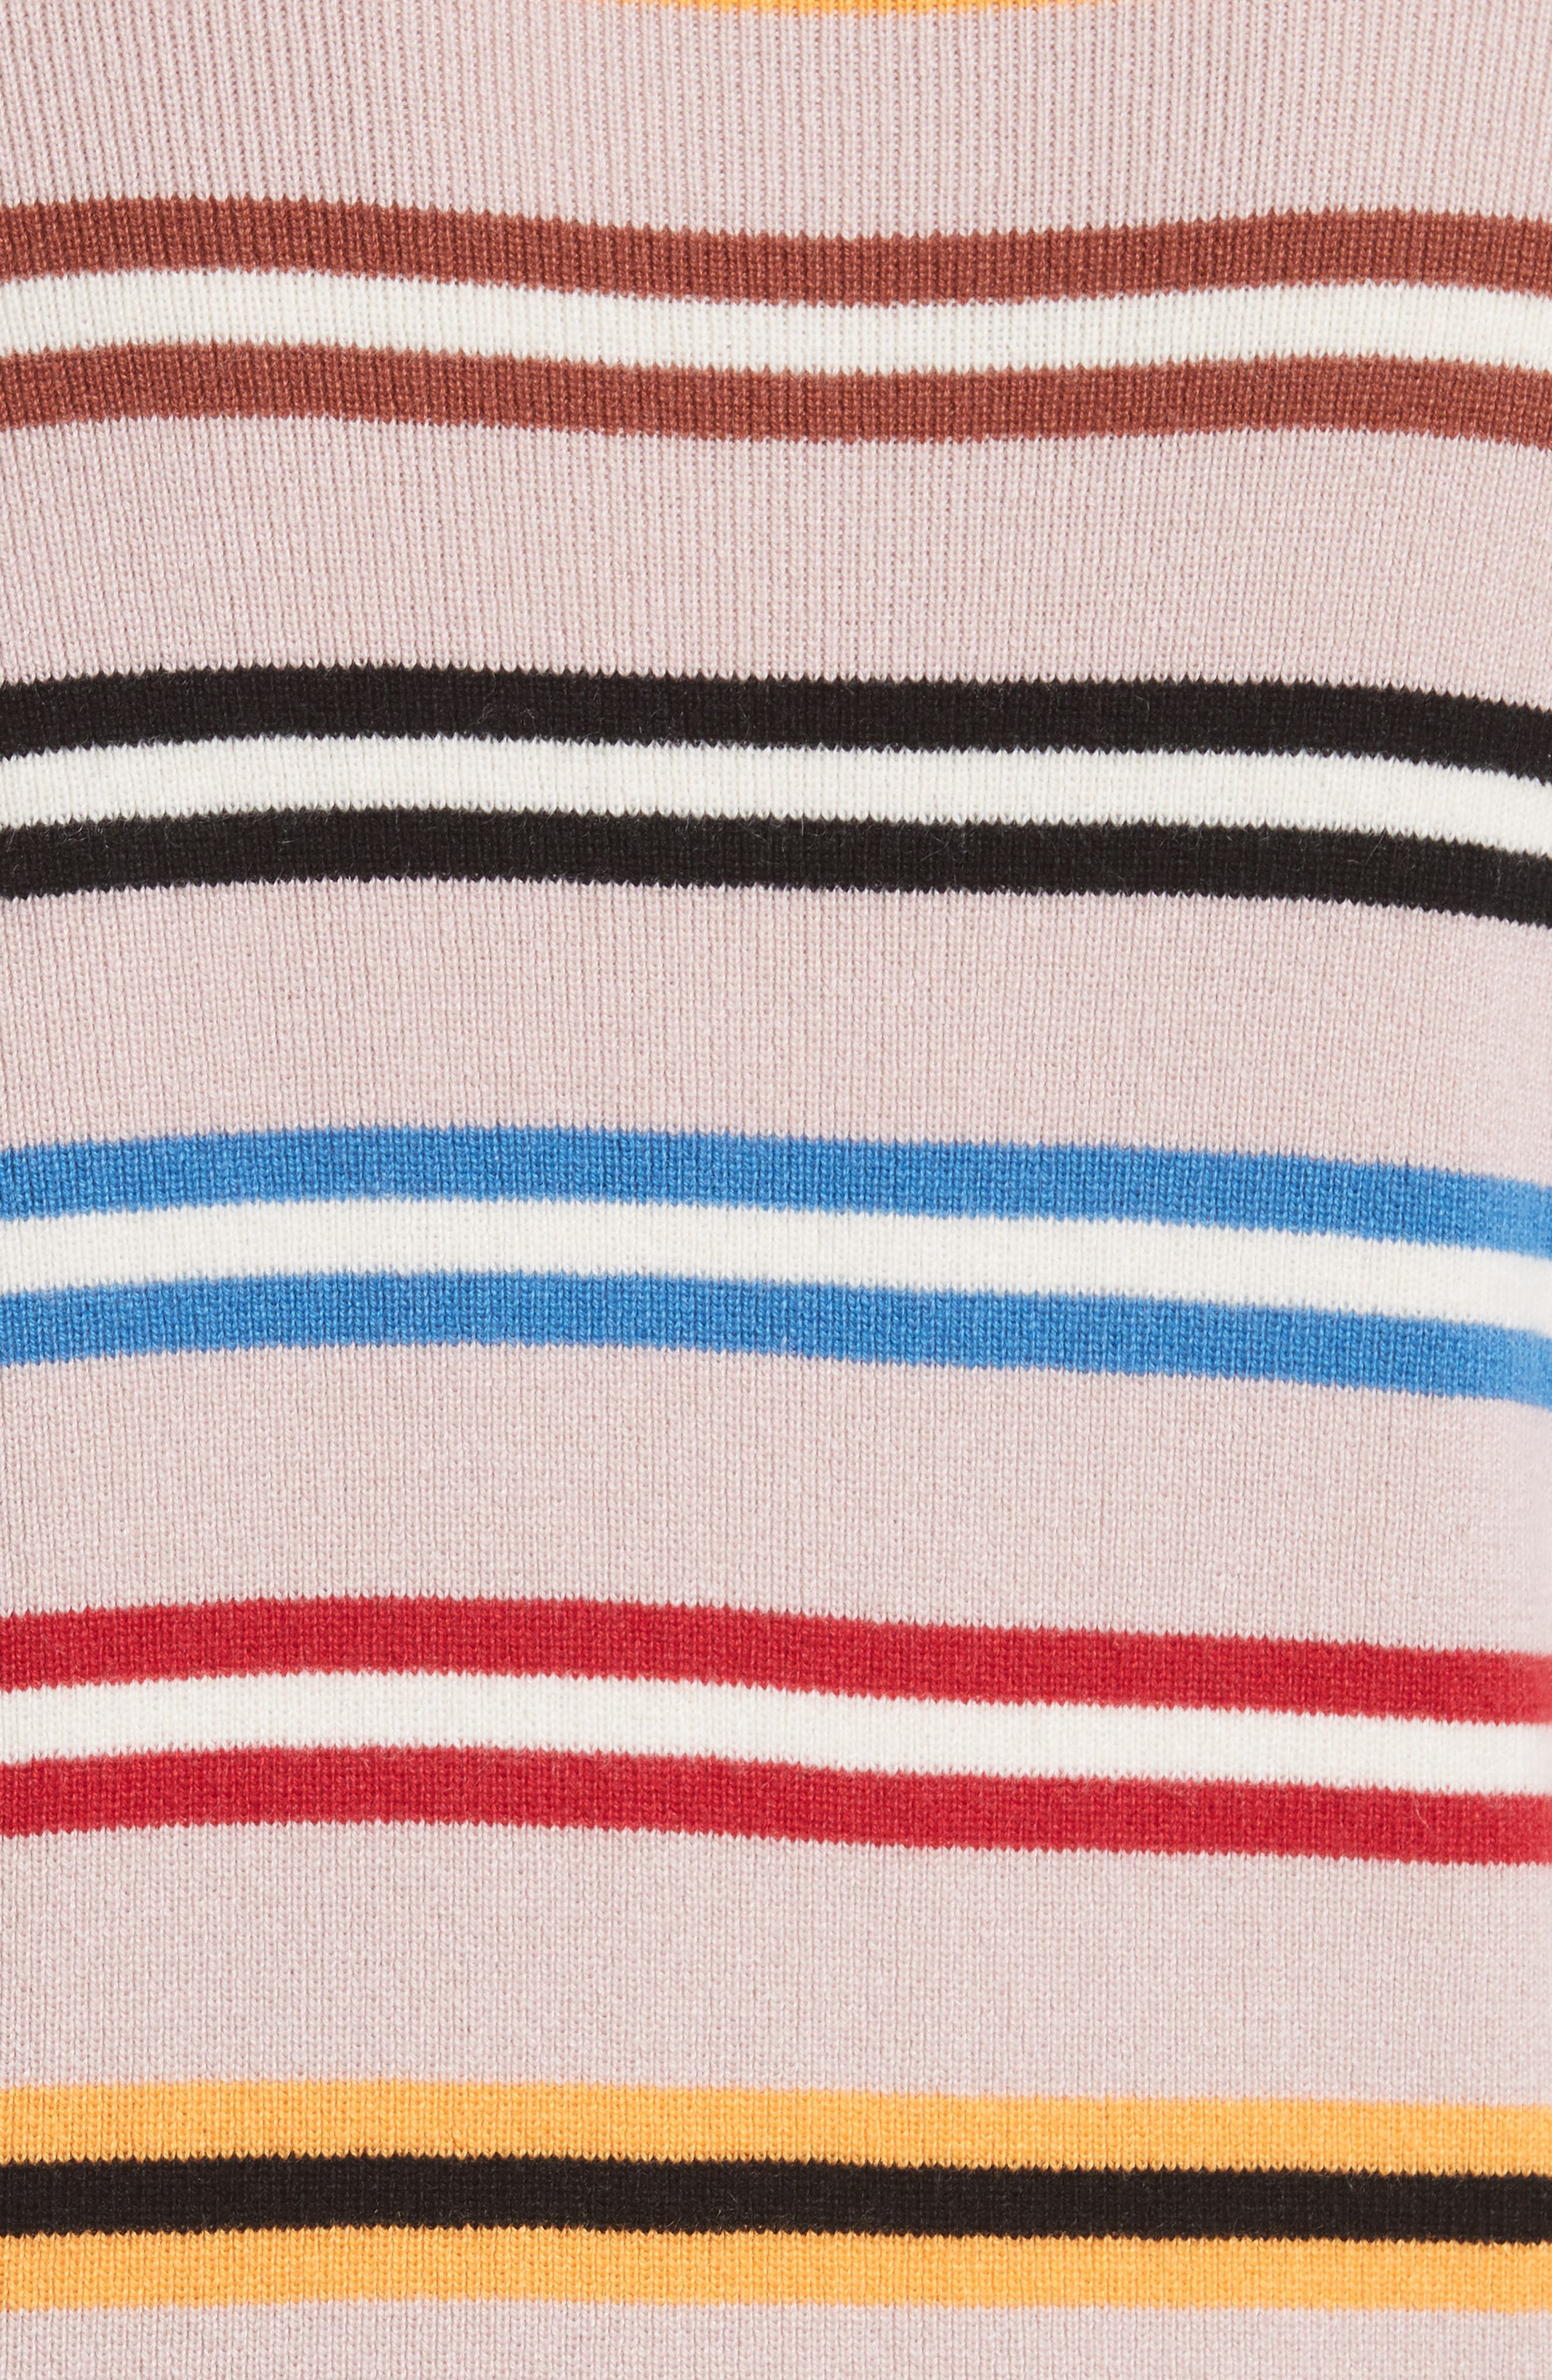 Stripe Cashmere Sweater,                             Alternate thumbnail 5, color,                             250